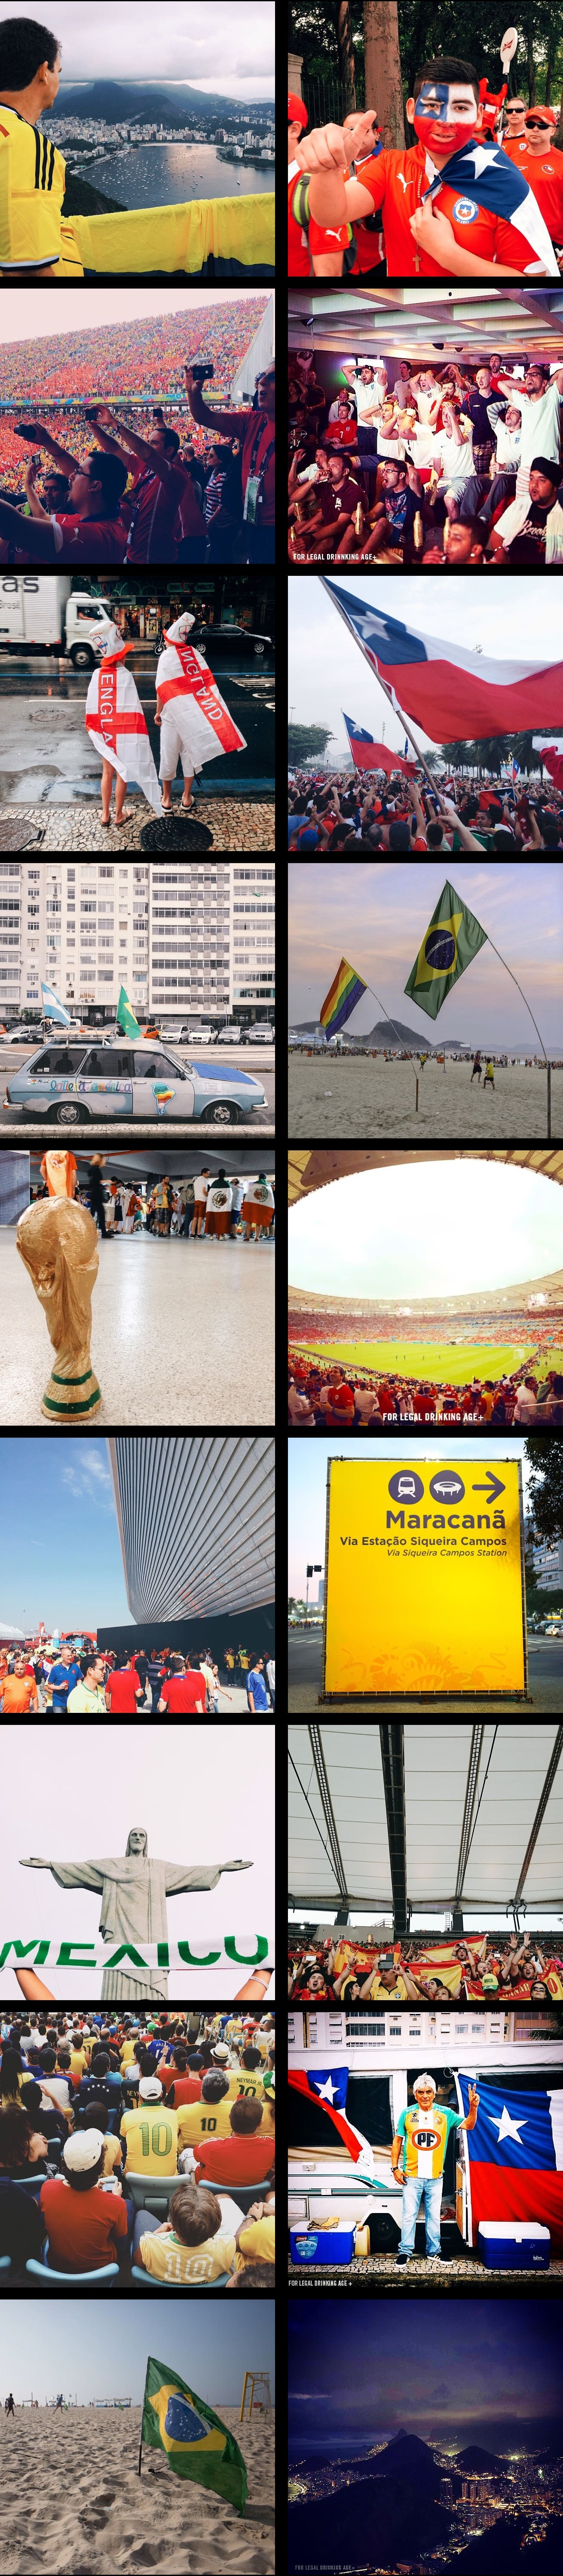 Rise as One in Rio: The 2014 World Cup